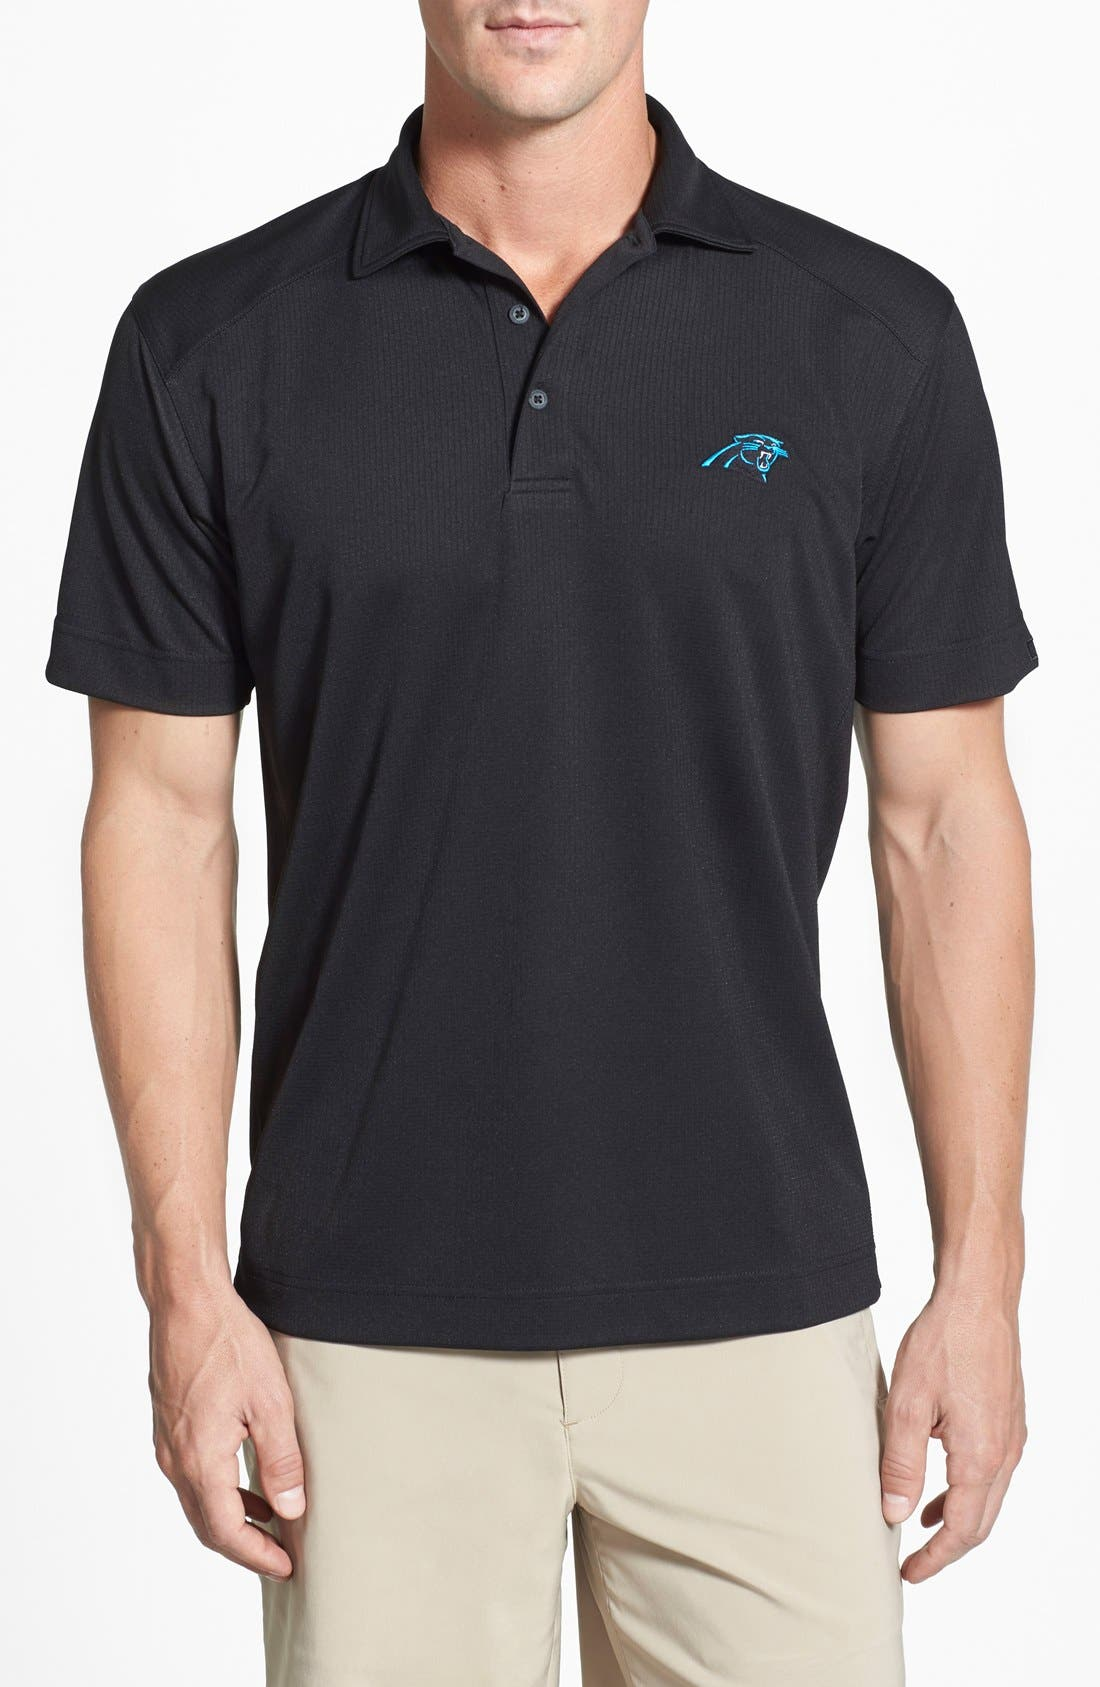 Carolina Panthers - Genre DryTec Moisture Wicking Polo,                         Main,                         color, Black